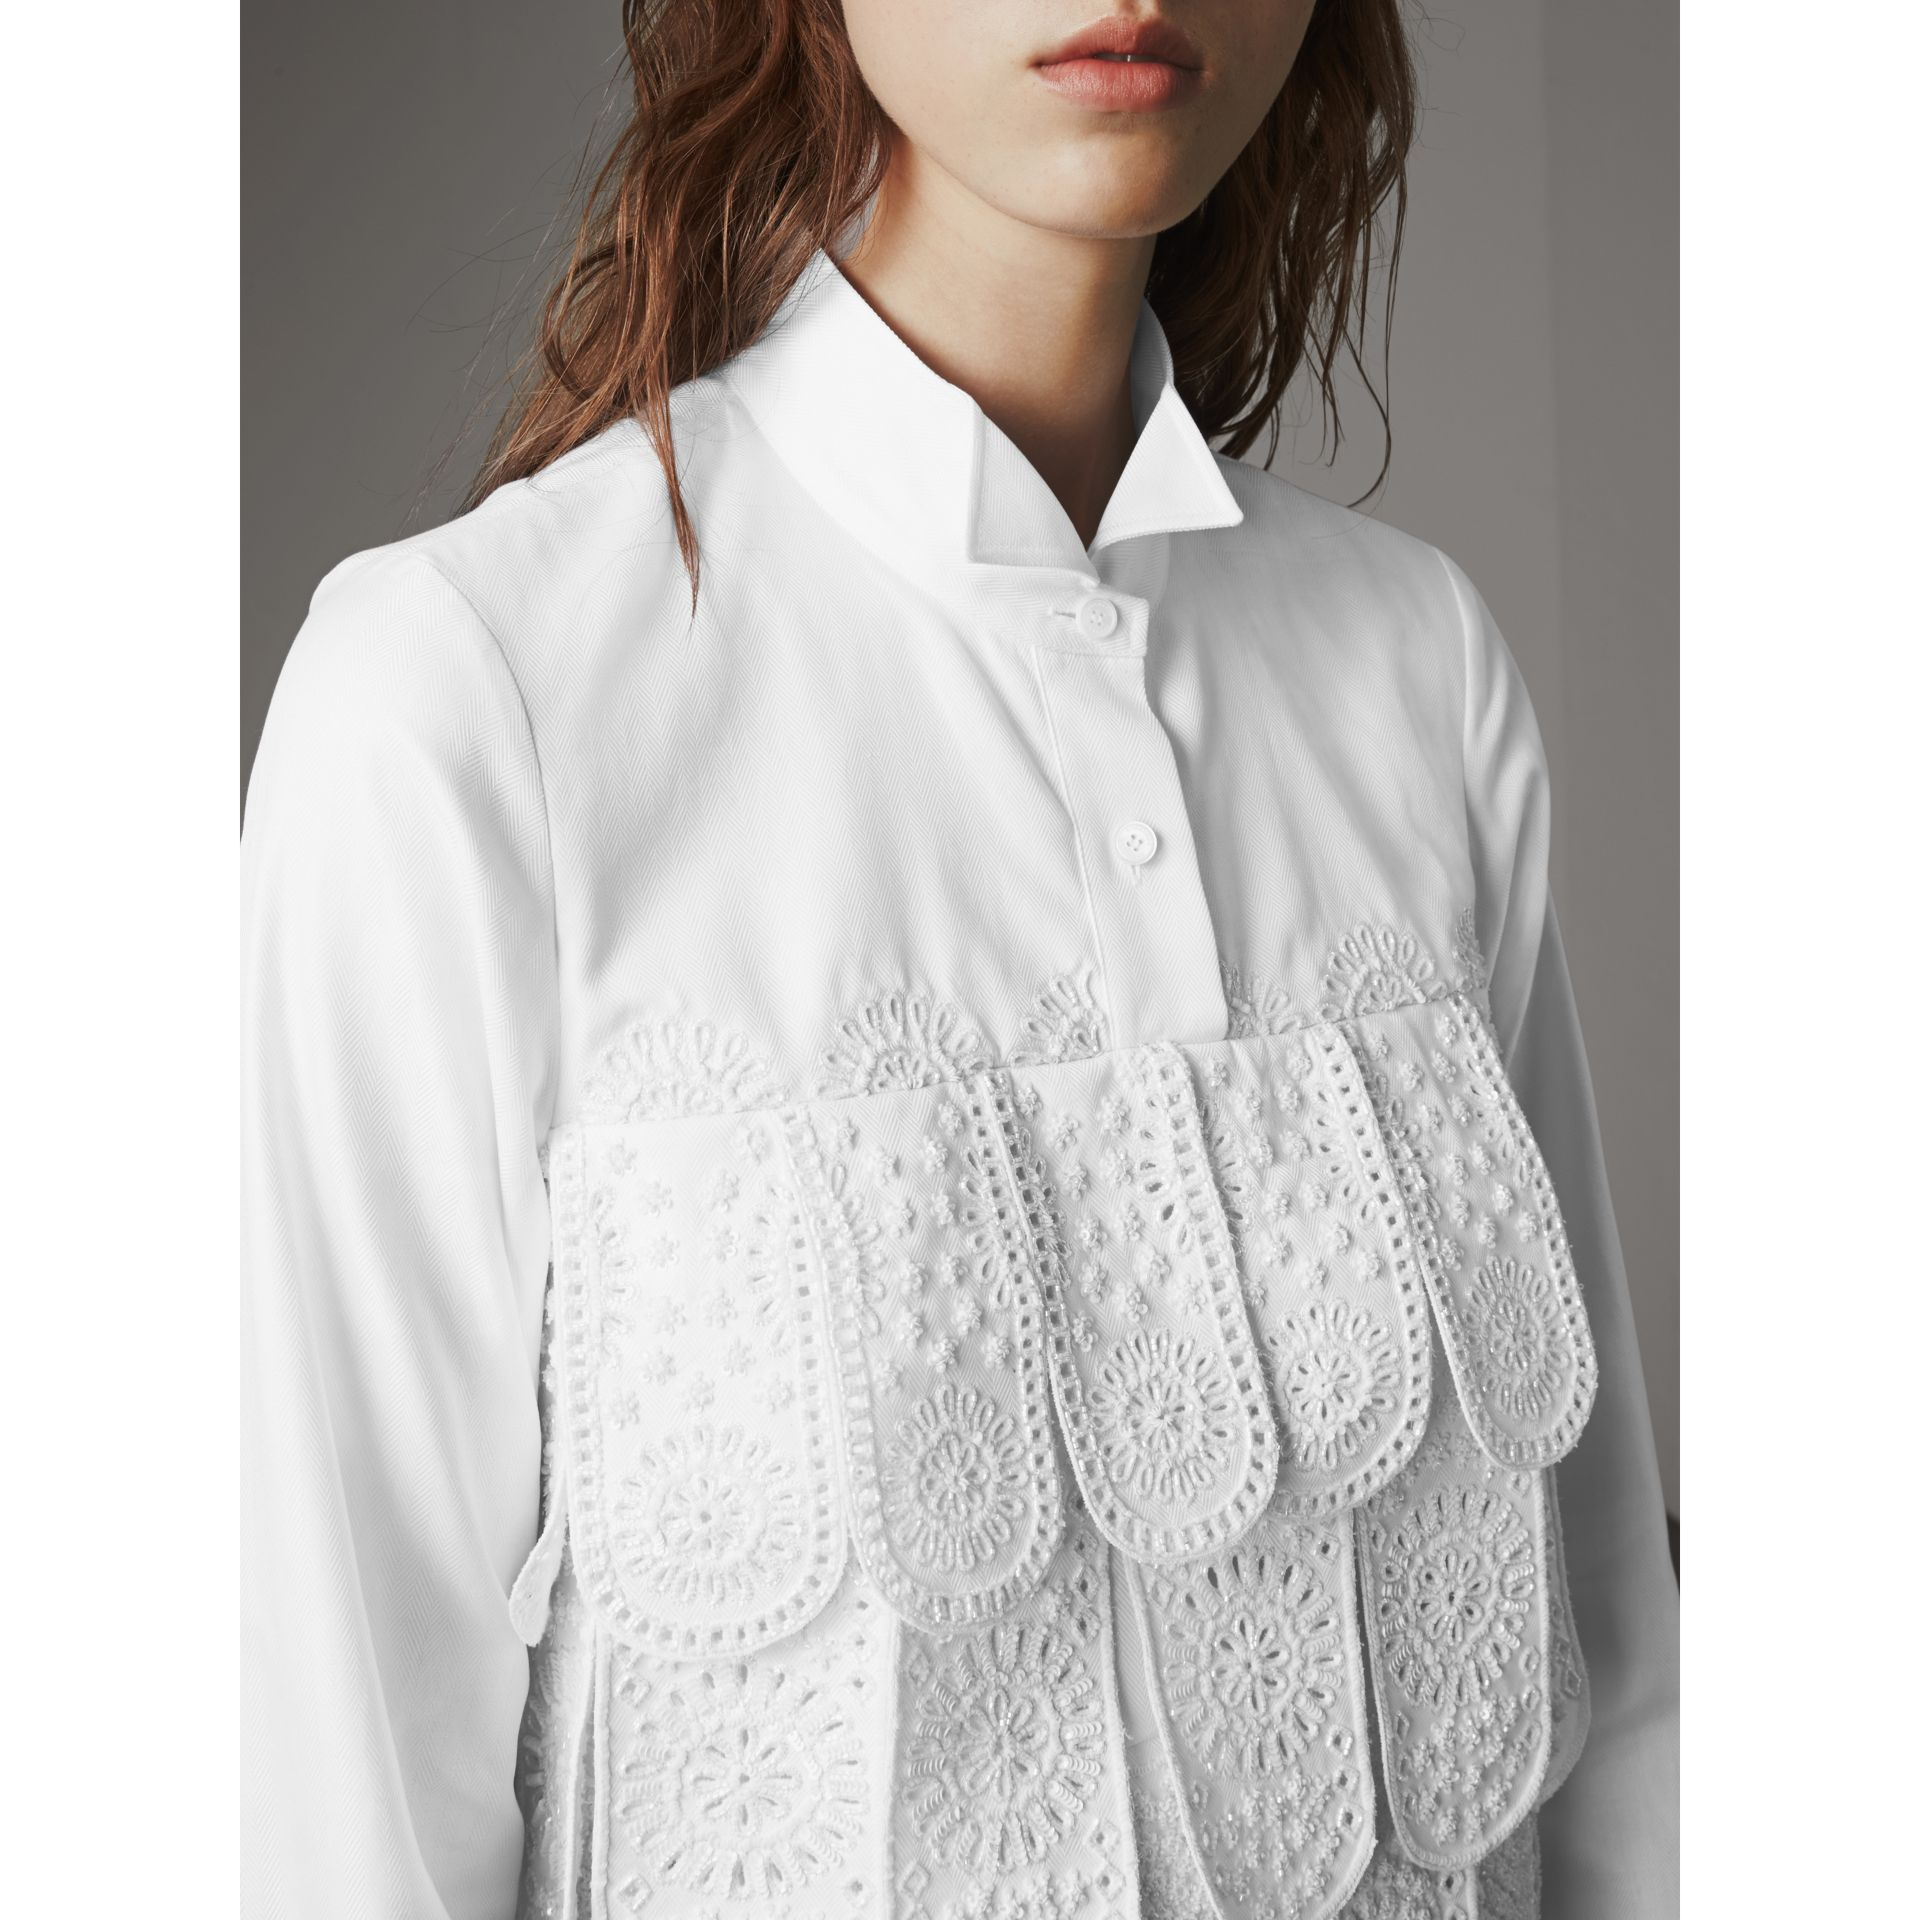 Scalloped Tier Embellished Cotton Shirt in White - Women | Burberry - gallery image 5